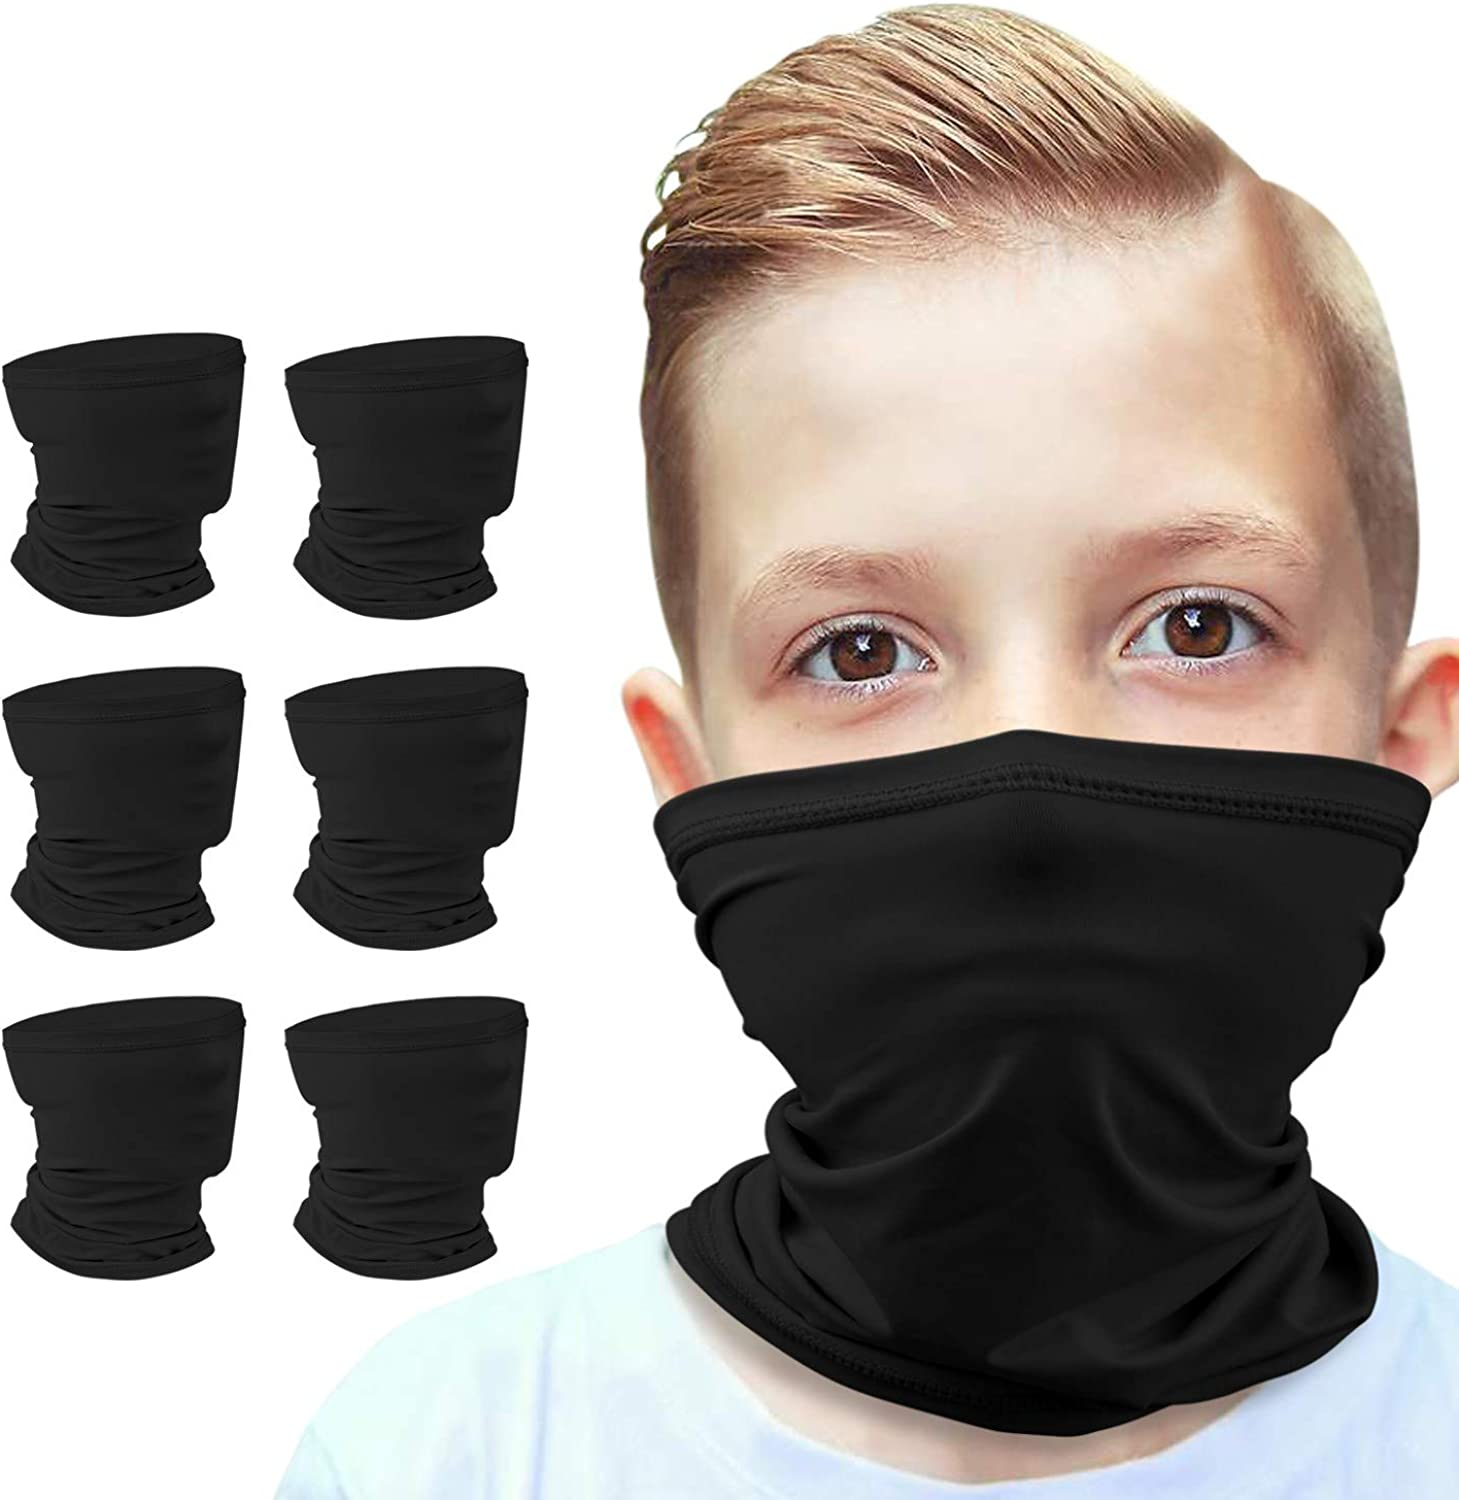 Anstronic 6-Pack 6-14 Years Kids Scarf Cooling Award-winning store Gaiter Br High order Neck